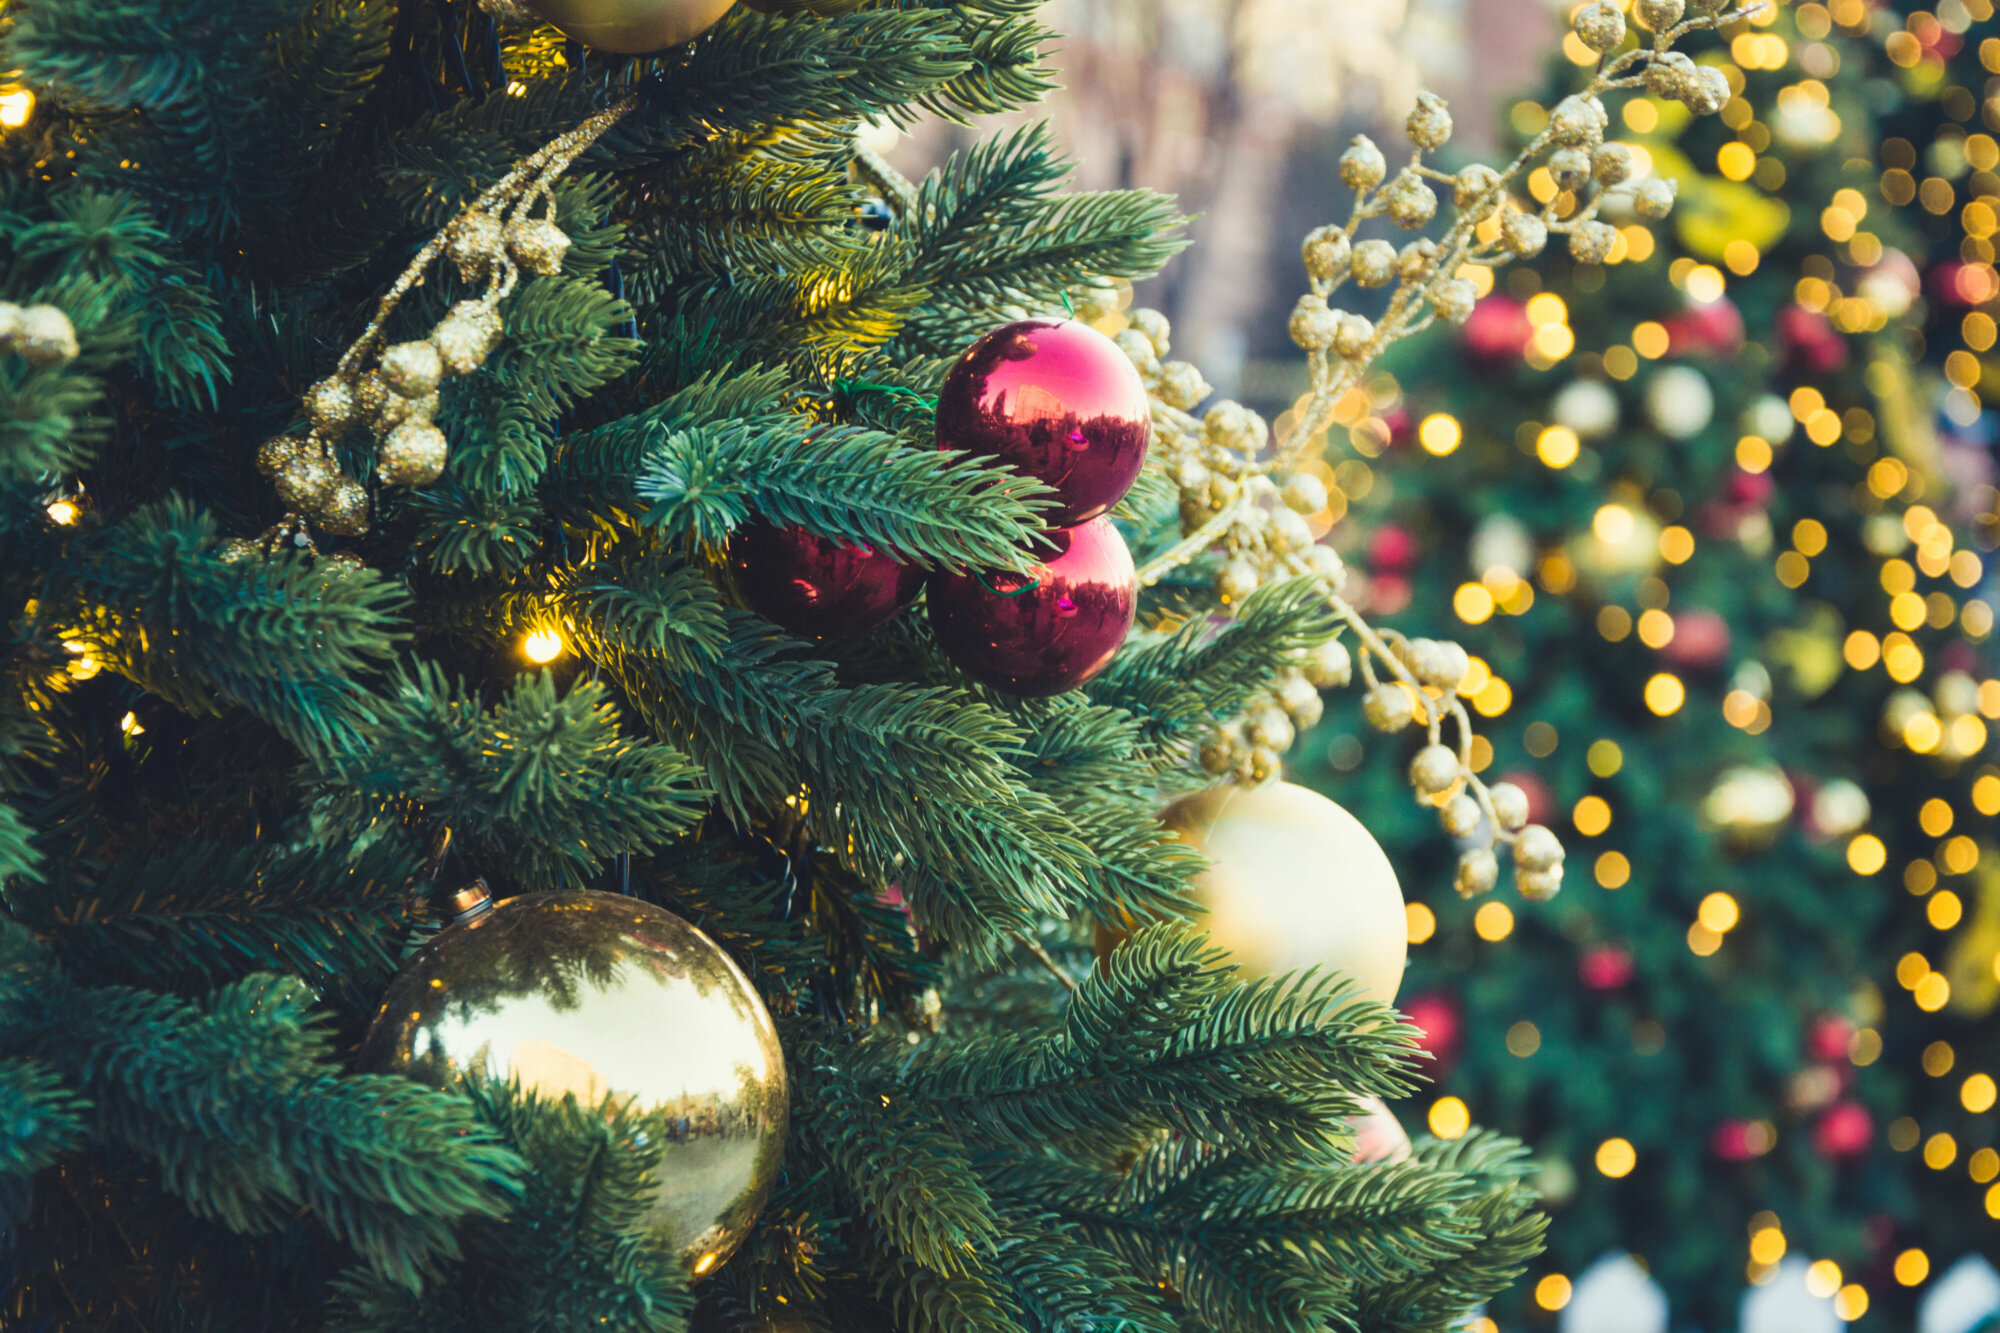 2020 Dispise Of Christmas Tree How to dispose of your Christmas tree and holiday greenery in 2020